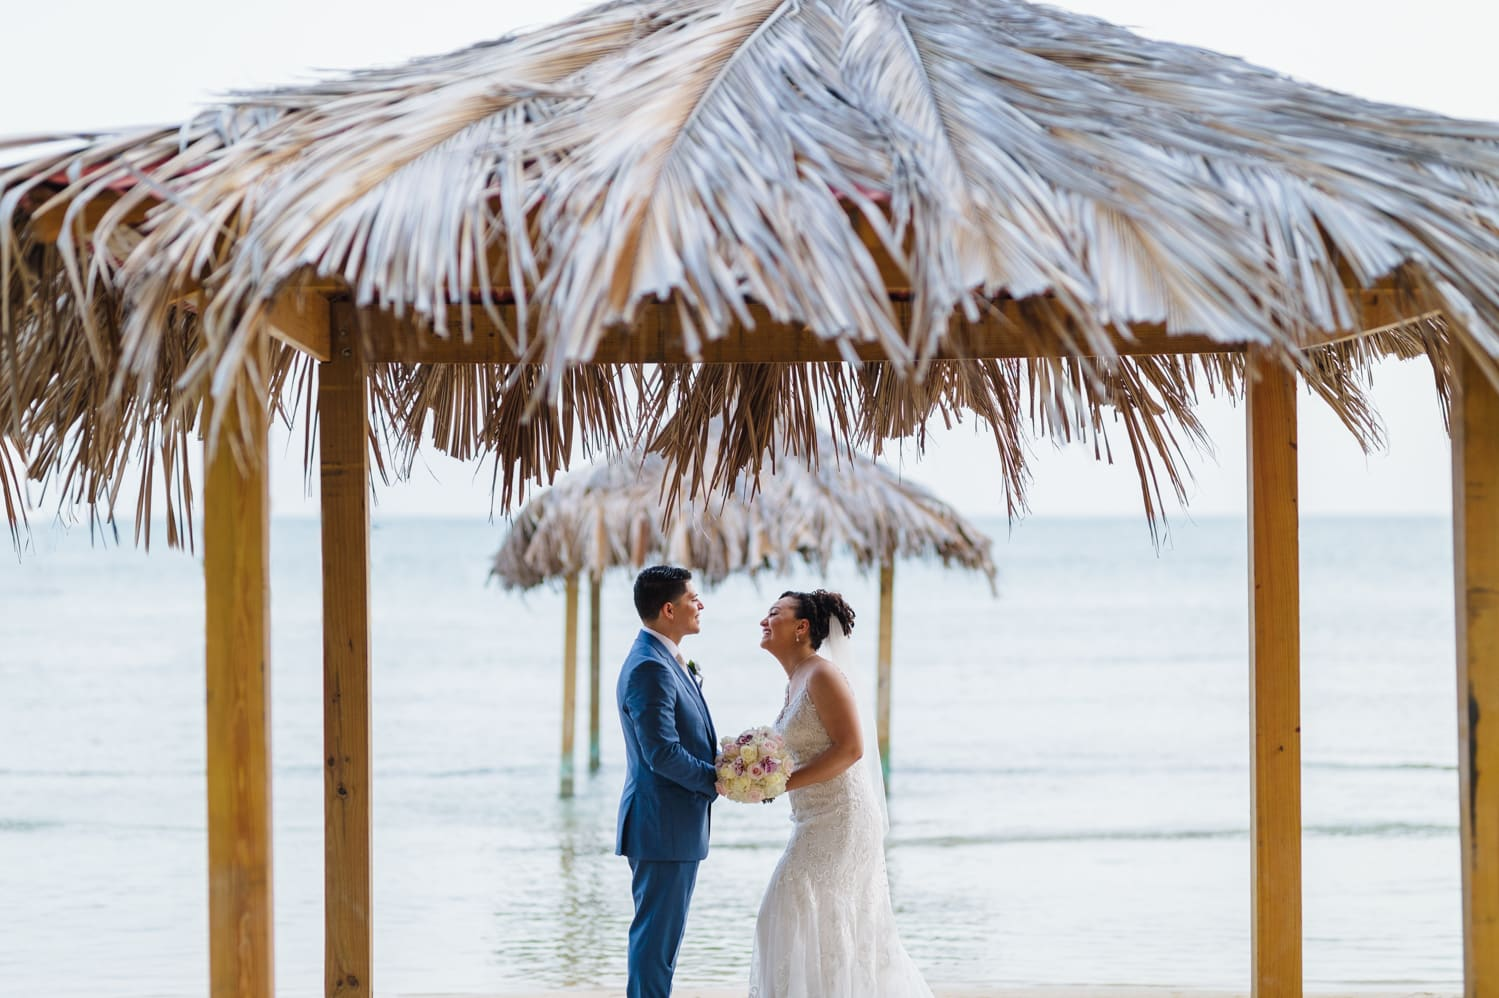 Destination wedding at Copamarina Beach Resort by Puerto Rico photographer Camille Fontanez